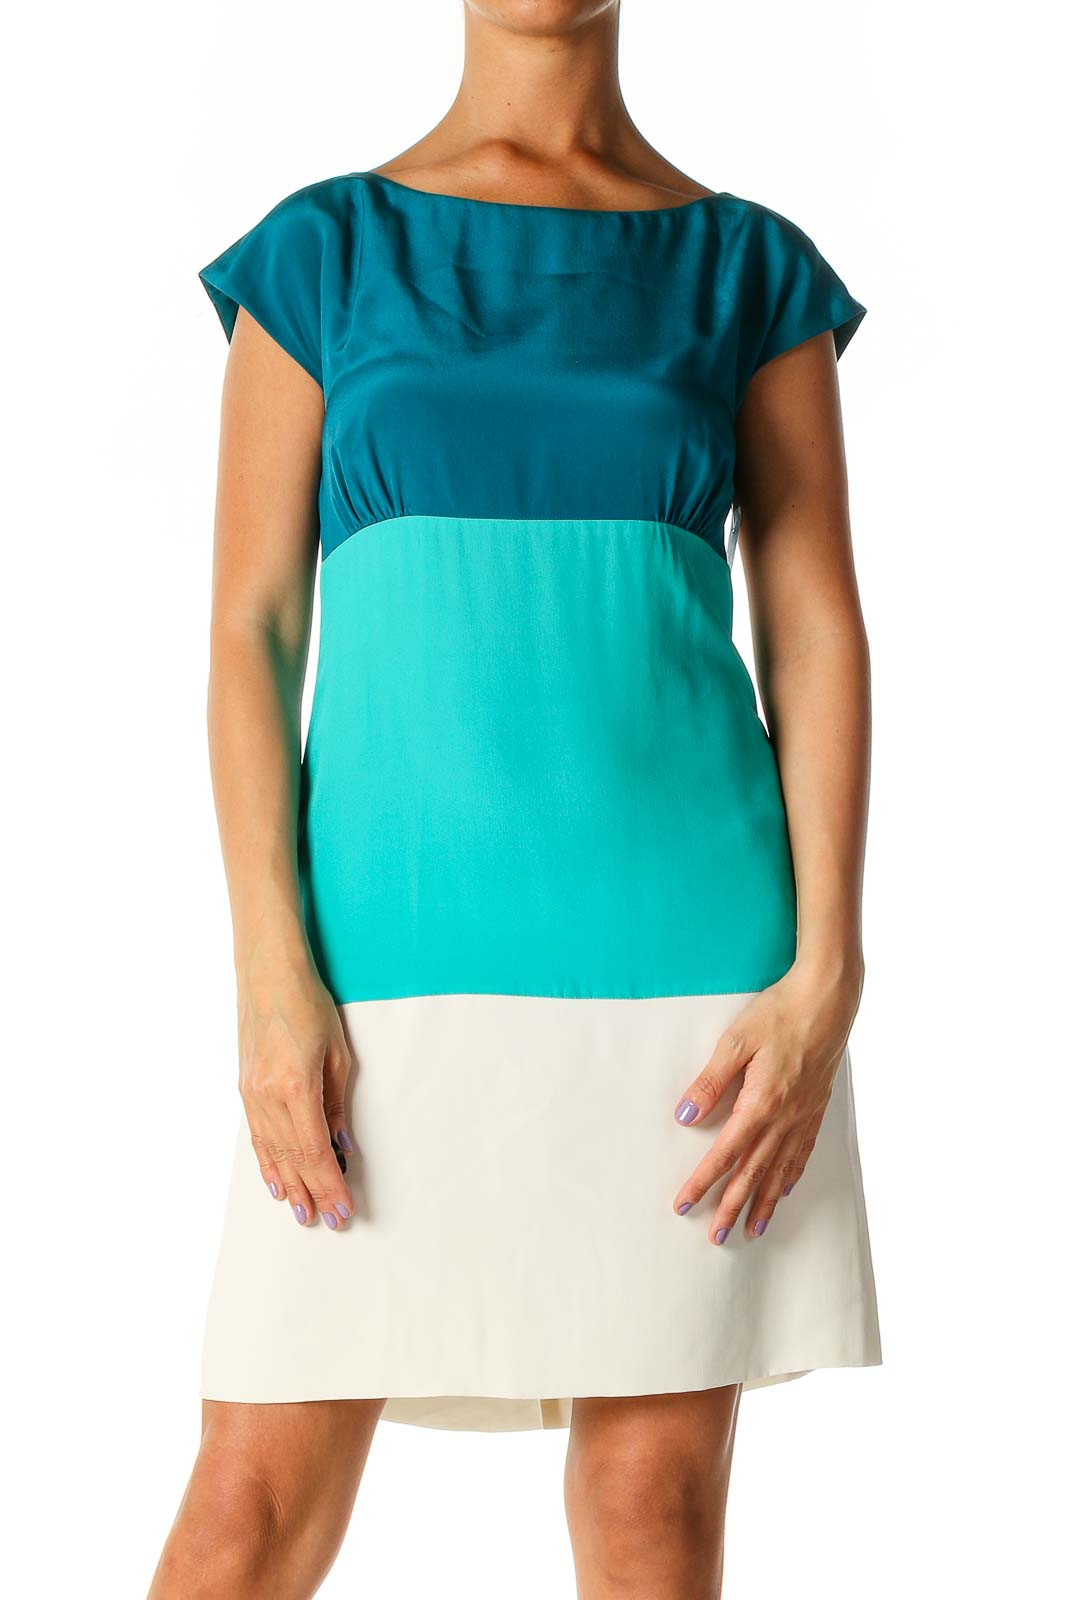 Blue Colorblock Casual A-Line Dress Front